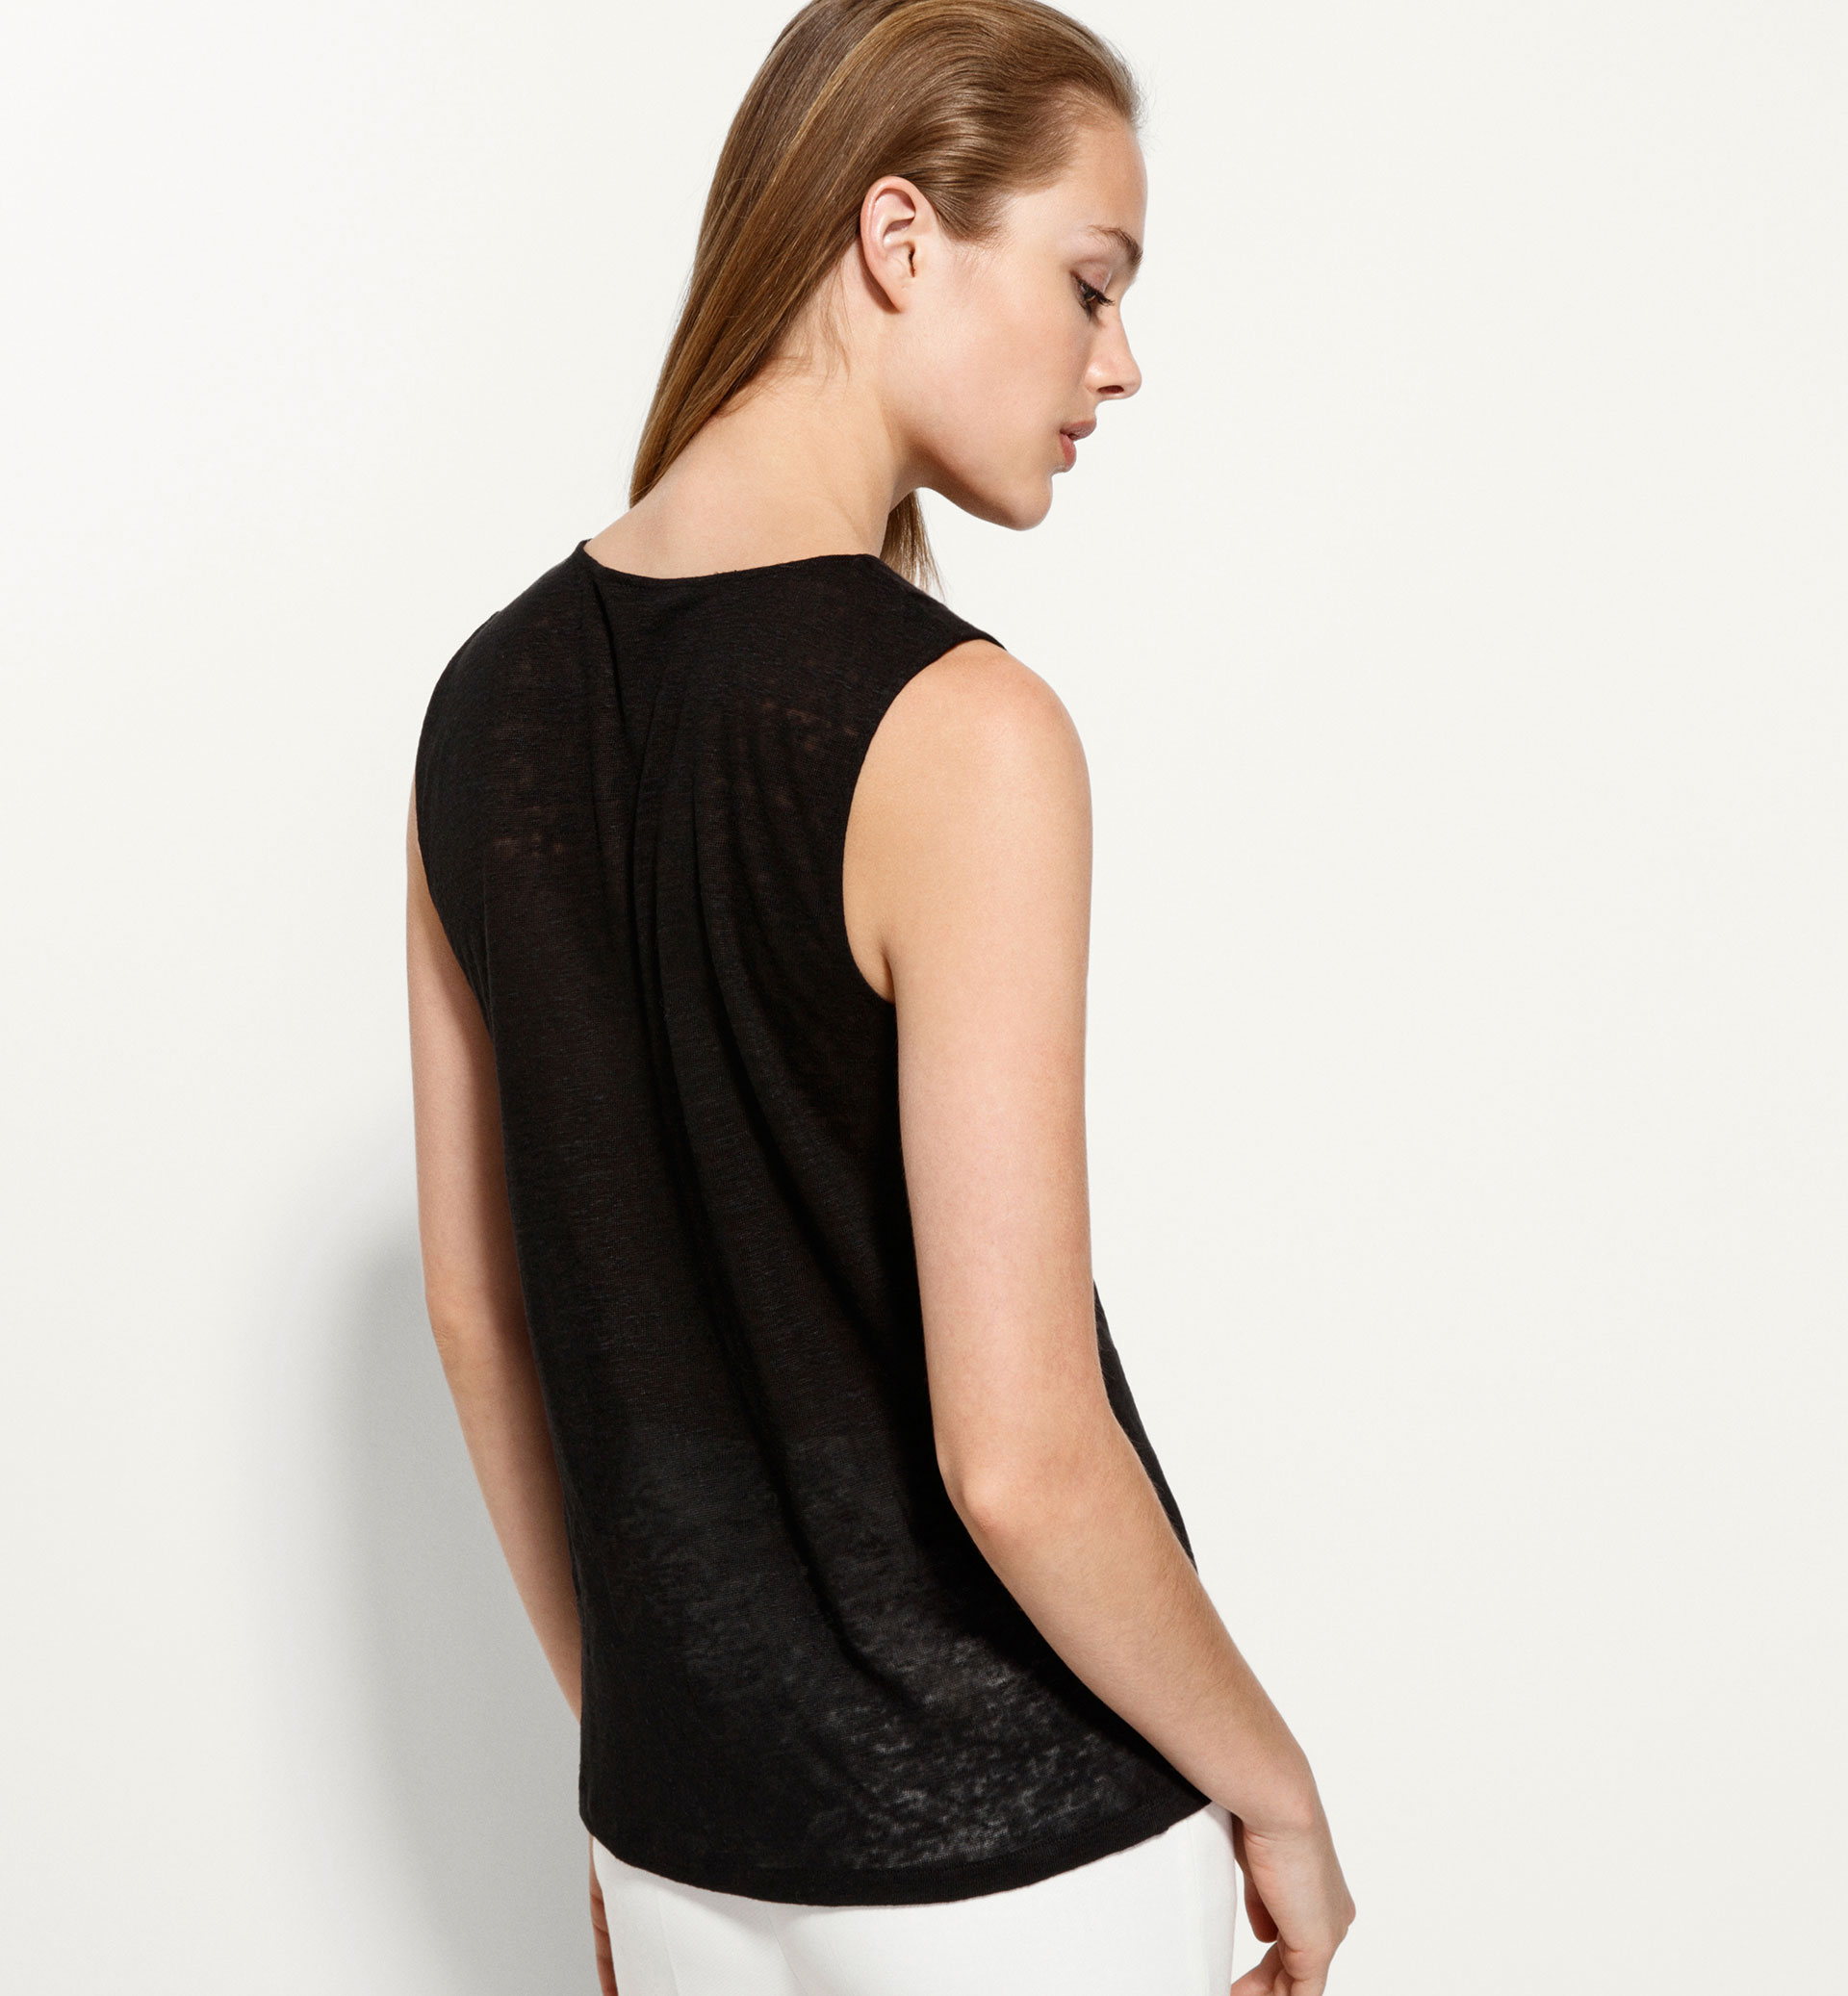 TOP WITH NECKLINE DETAIL